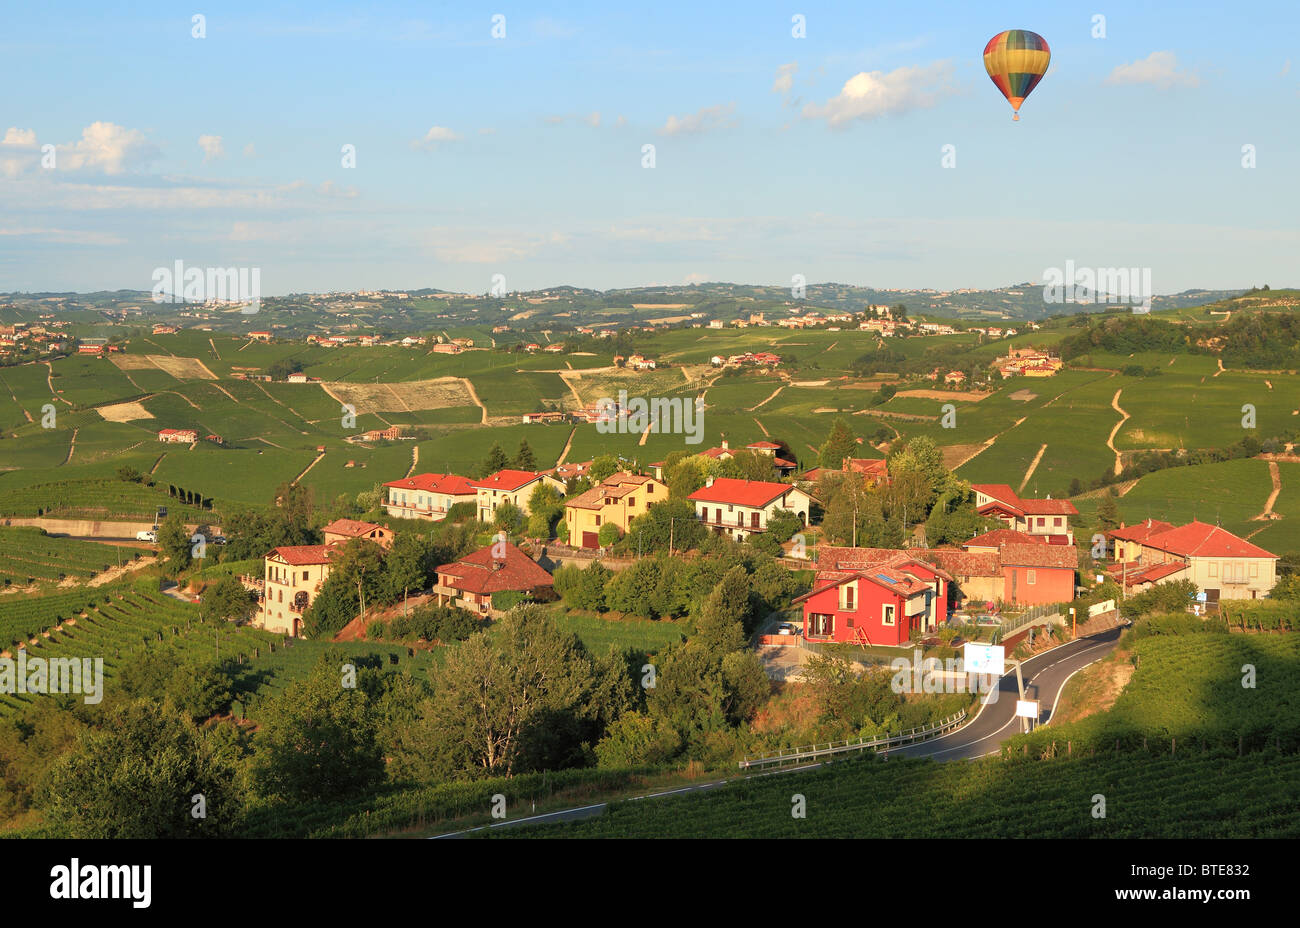 Air balloon flying over vineyards of Piedmont in northern Italy. - Stock Image